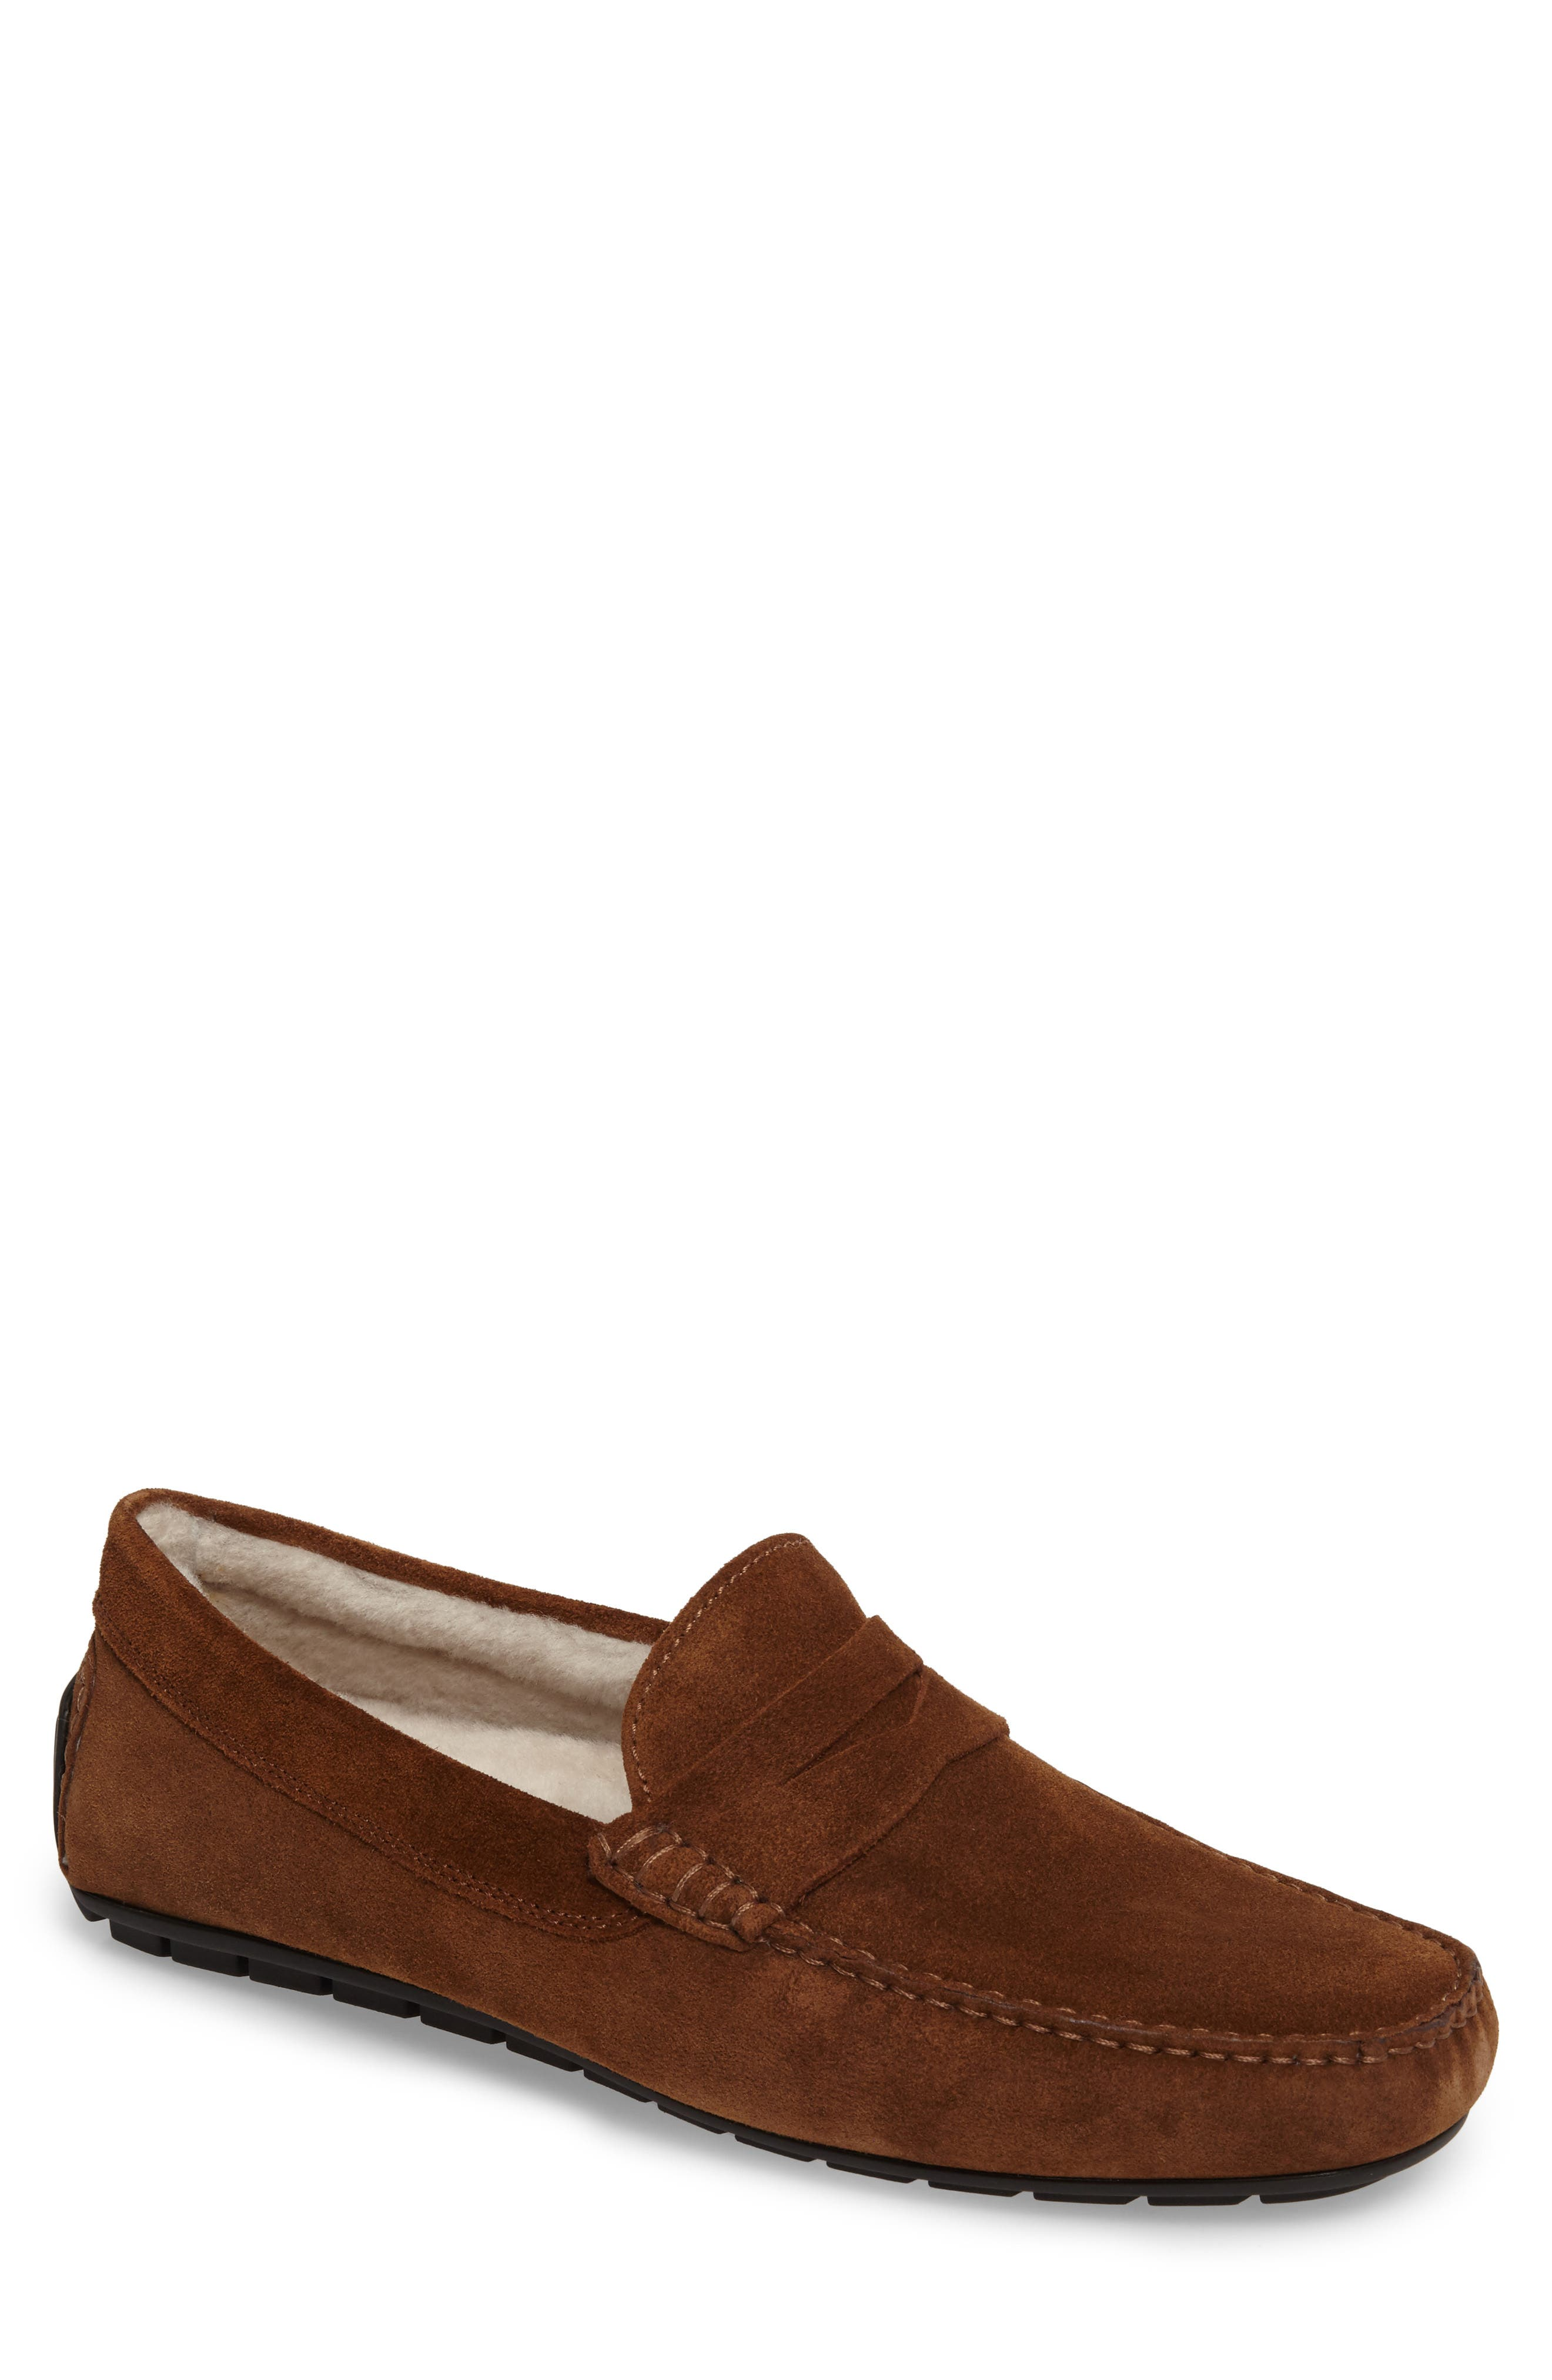 Alternate Image 1 Selected - To Boot New York Norse Penny Loafer with Genuine Shearling (Men)